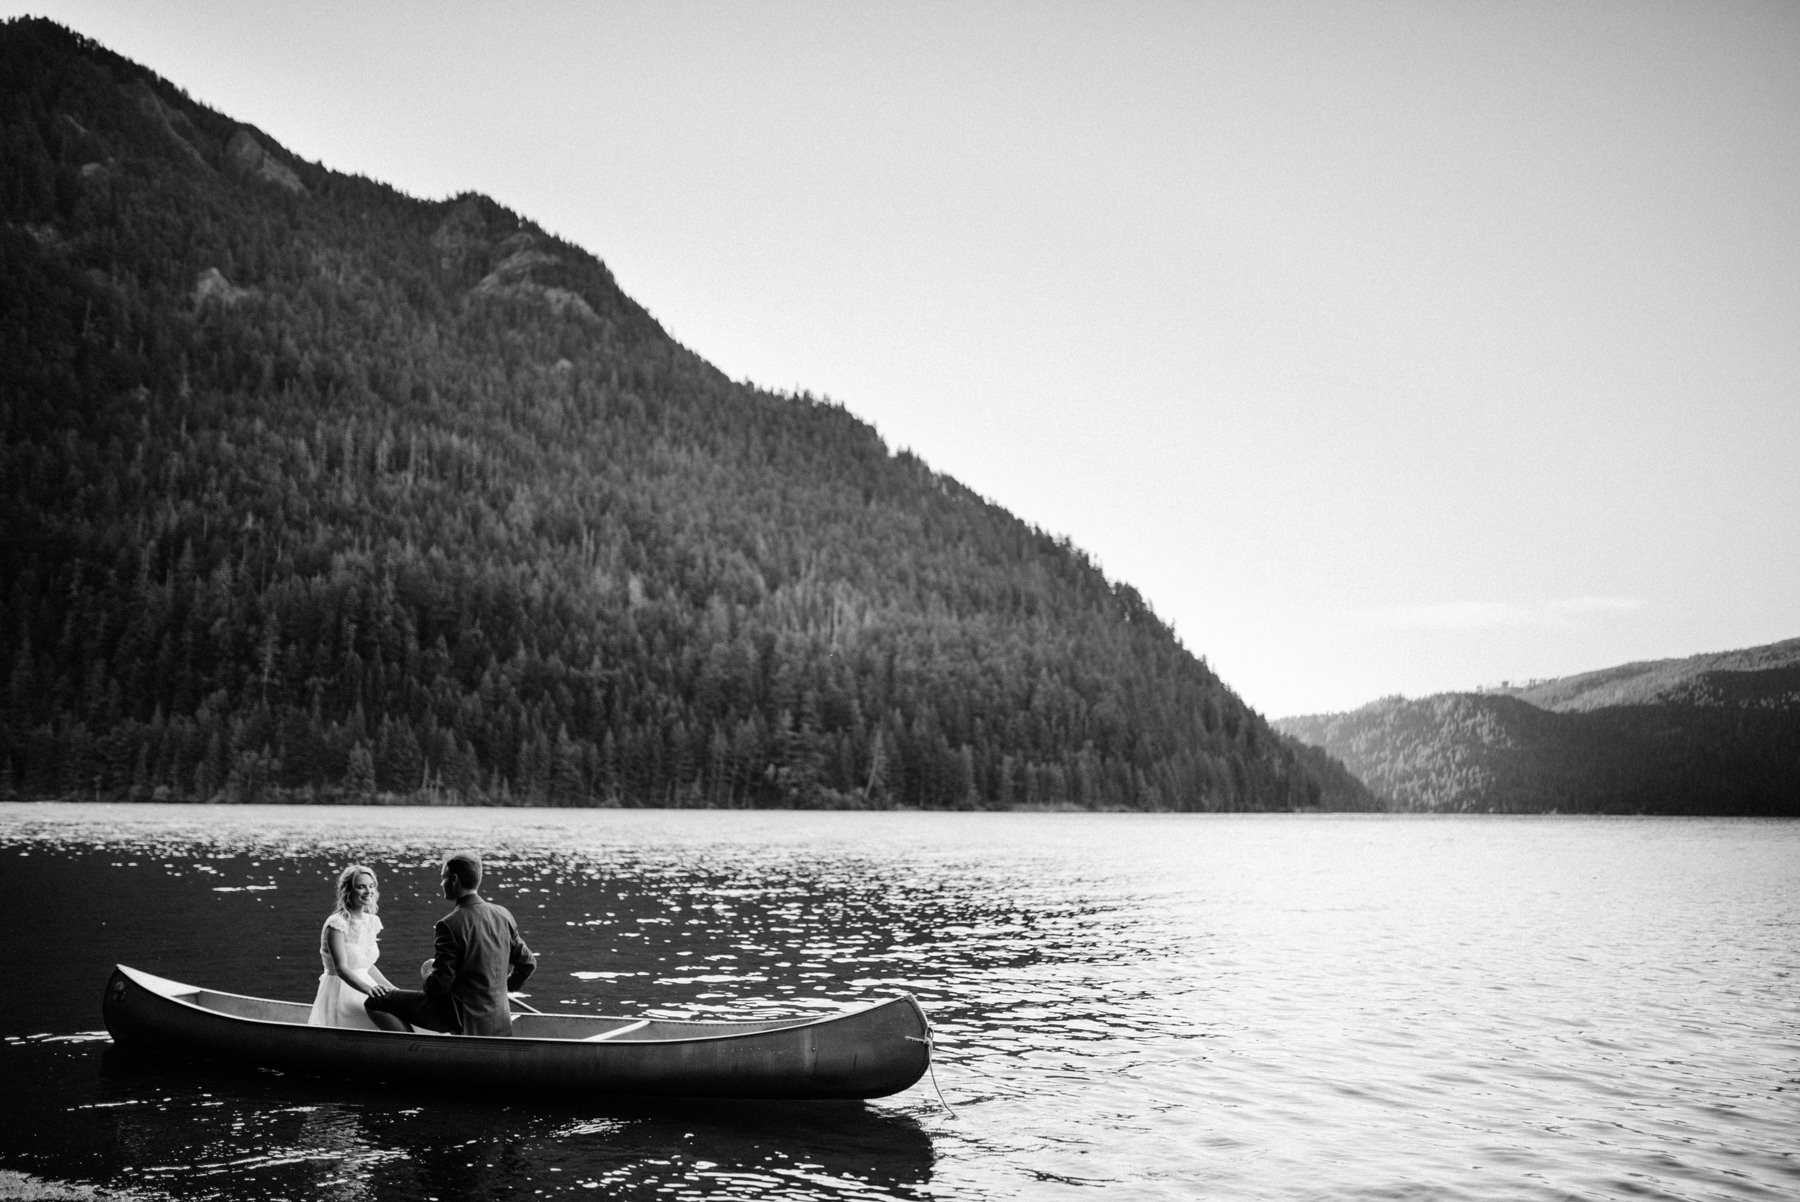 187-bride-and-groom-in-a-canoe-across-lake-crescent-by-nature-bridge.jpg